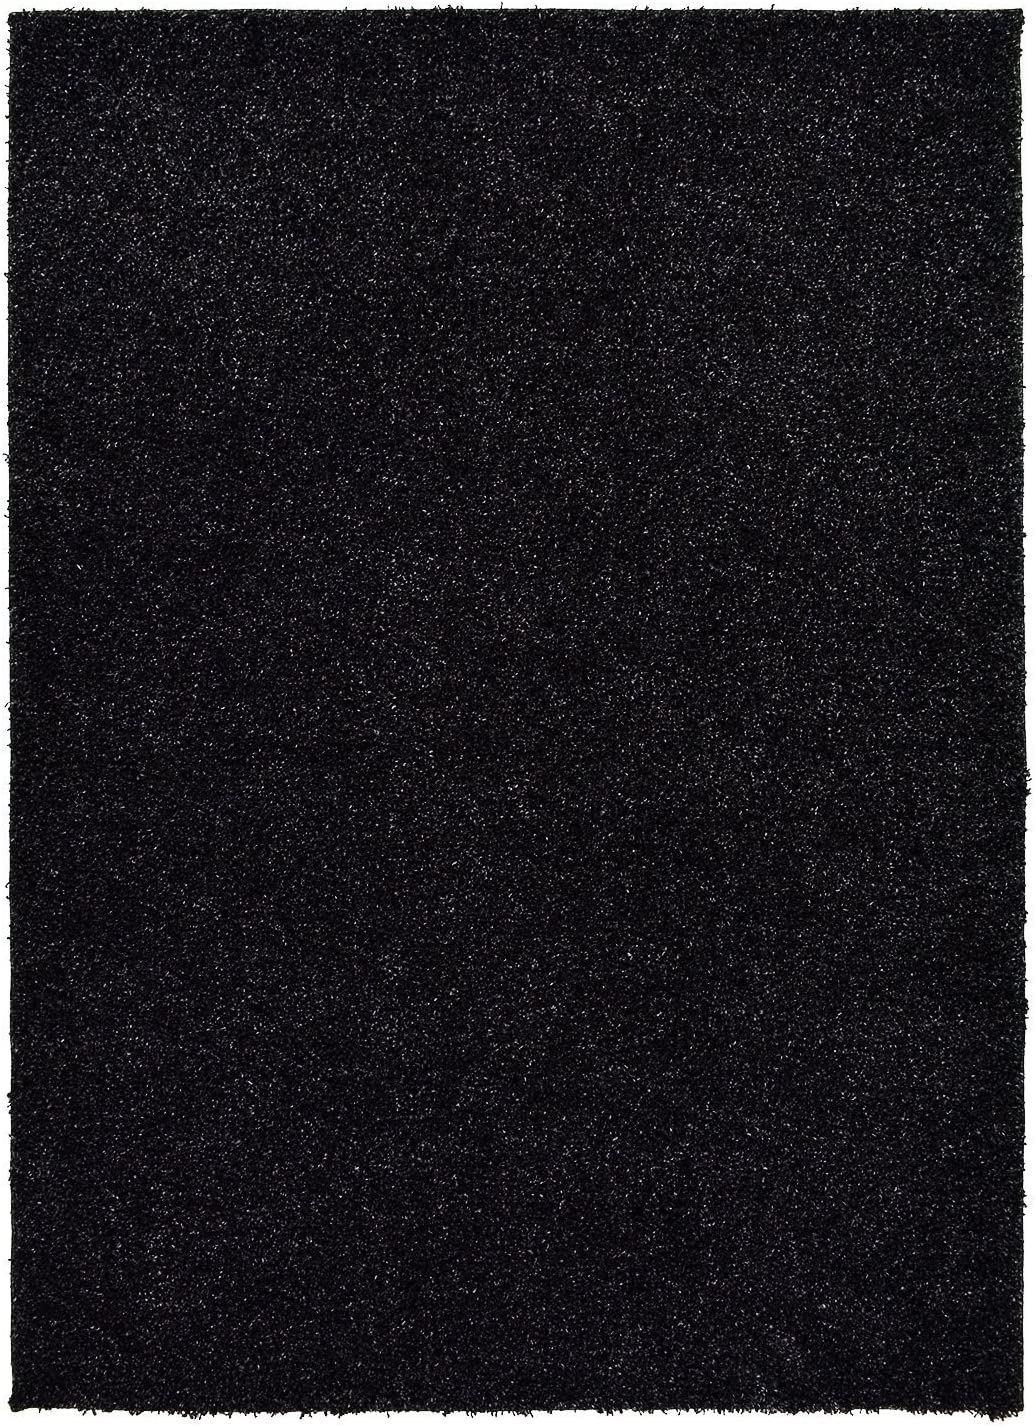 Solid Color New Shag Area Rug Rugs Shaggy Collection Anthracite Black